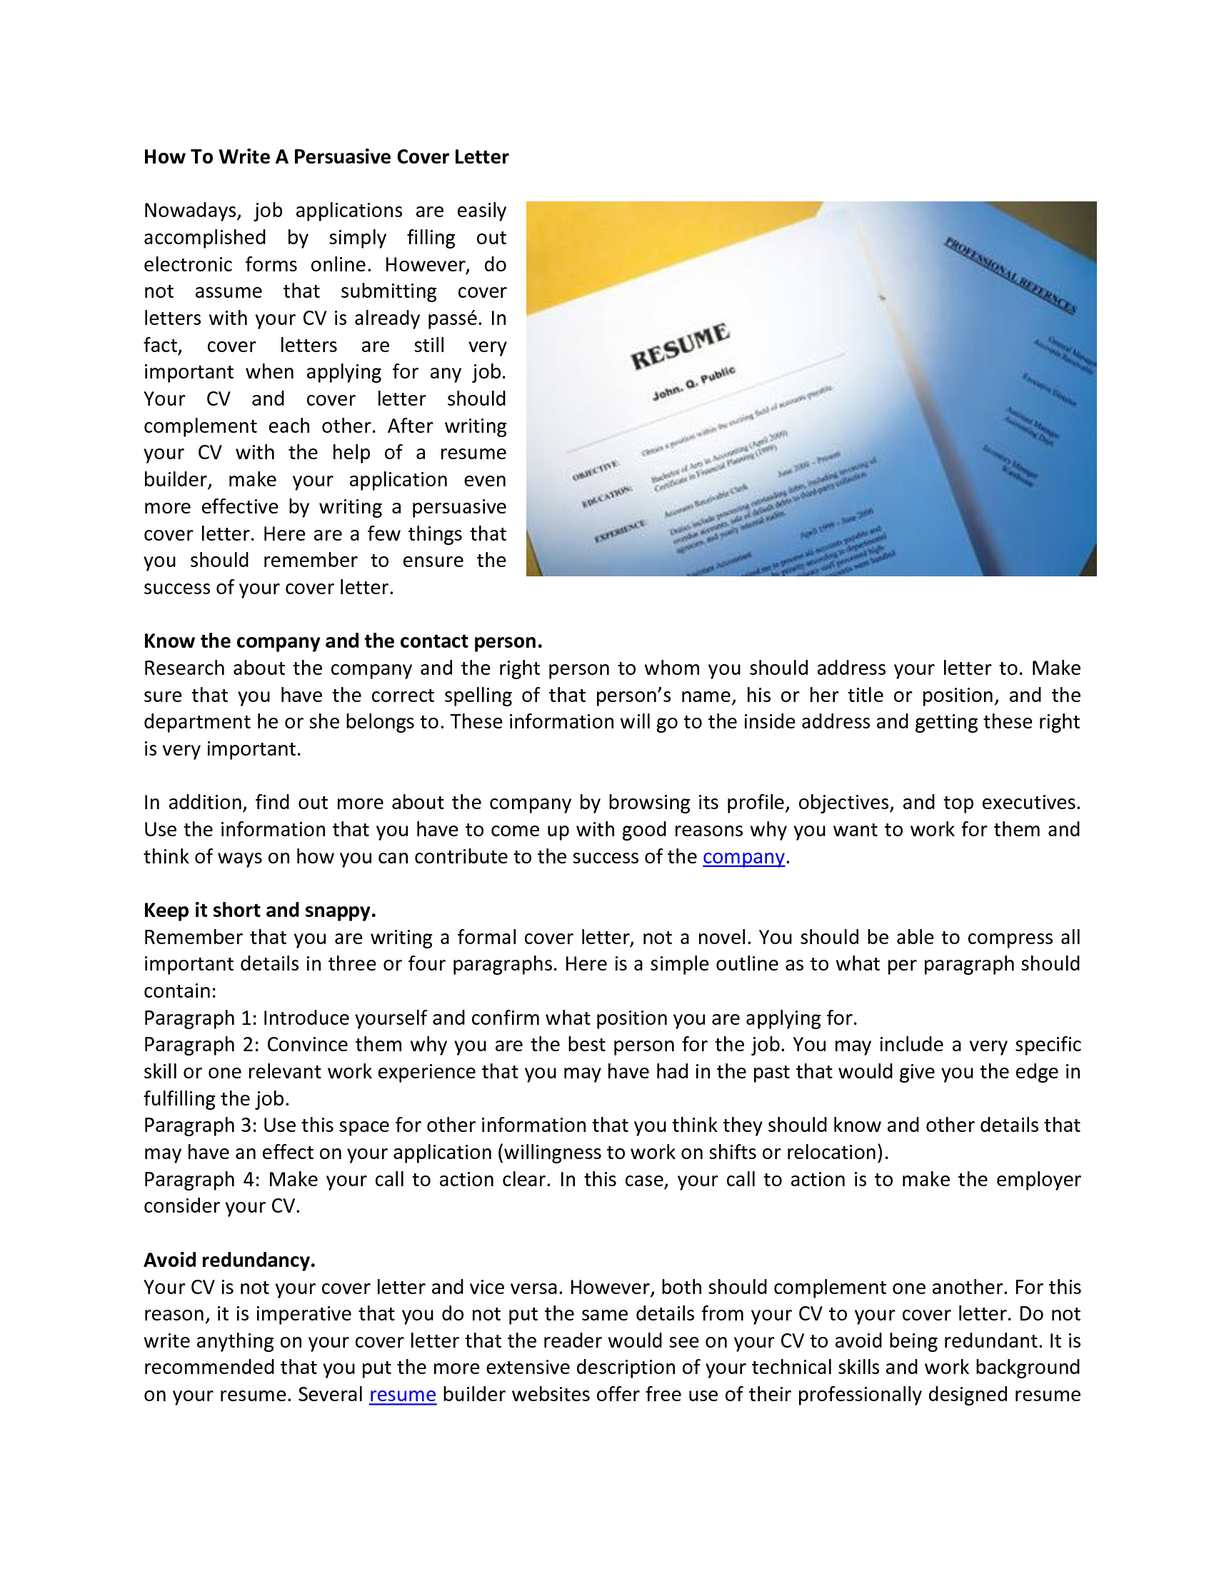 Calaméo - How To Write A Persuasive Cover Letter